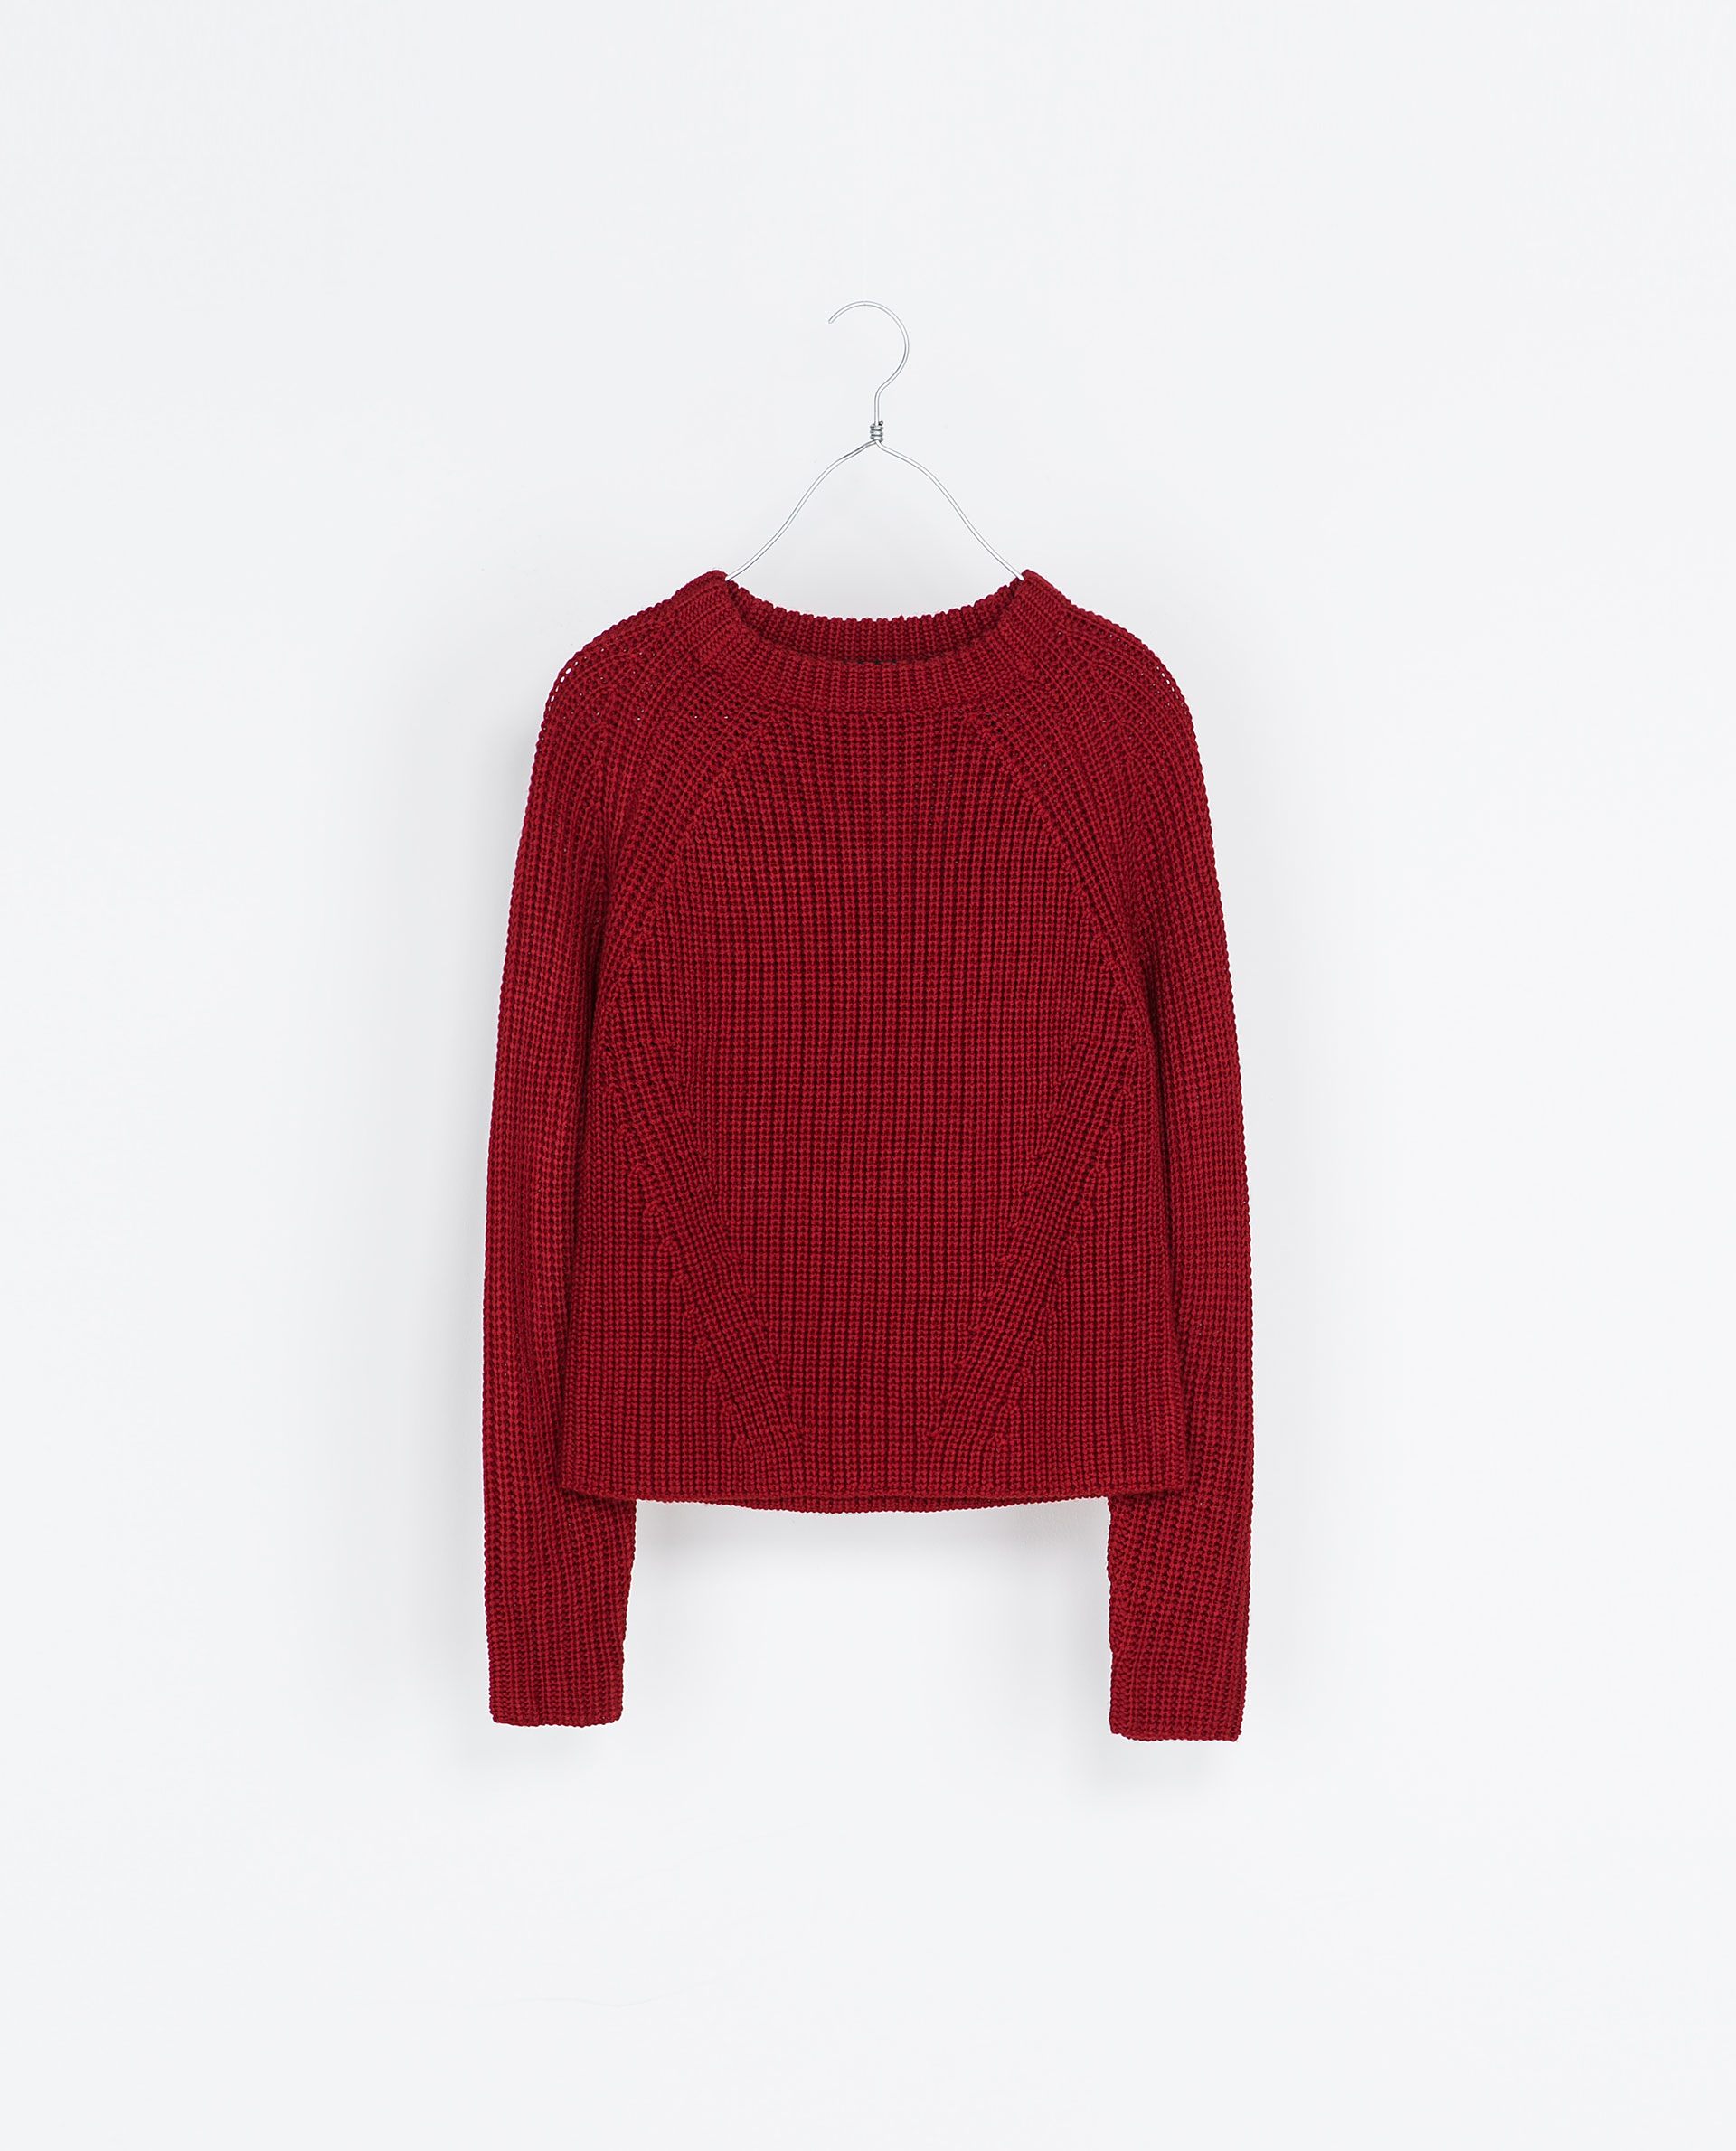 Zara Cropped Knitted Sweater in Red | Lyst